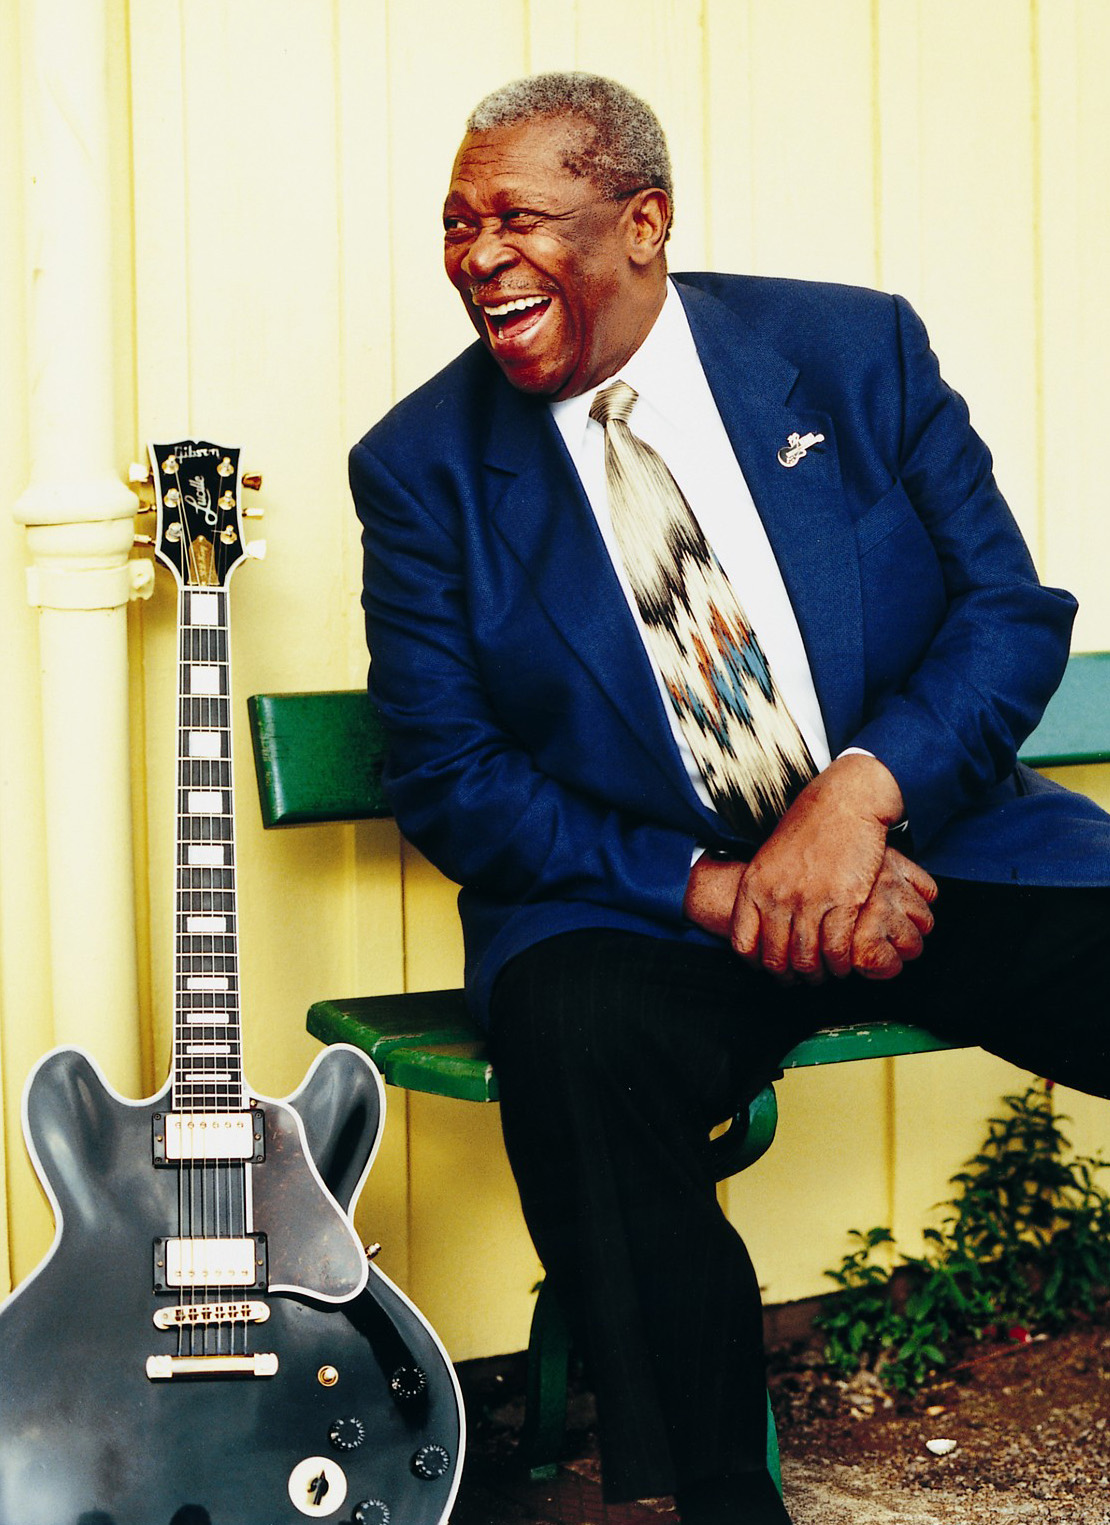 https://i0.wp.com/news.uns.purdue.edu/images/+2006/BBKing.jpg